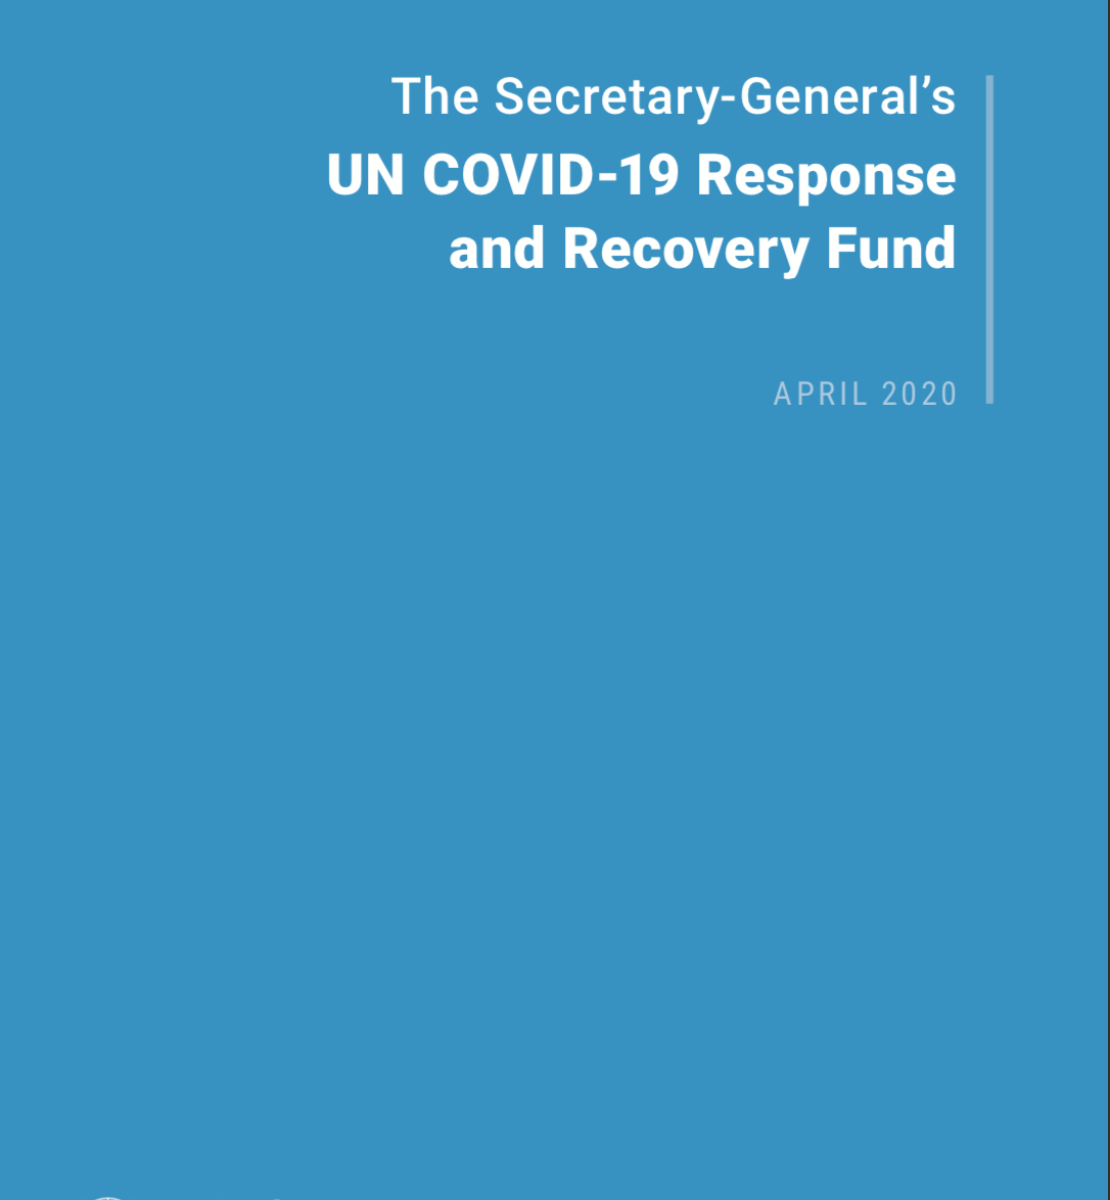 """Cover shows the title """"The Secretary-General's UN COVID-19 Response and Recovery Fund"""" against a solid background and UN emblem on the lower left."""